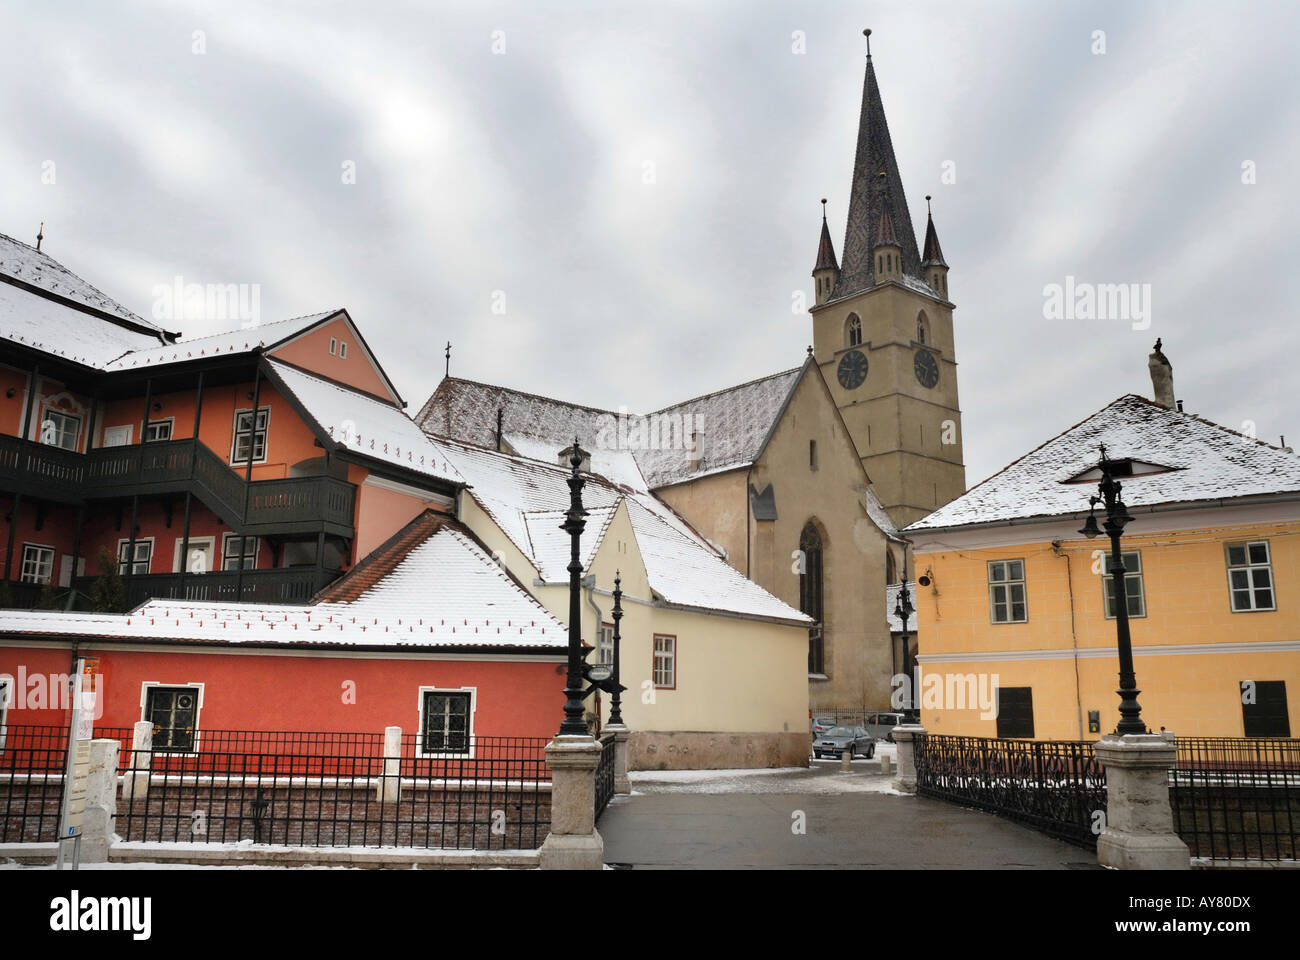 Evangelic Church in Sibiu, viewed from the Bridge of the Lies - Stock Image